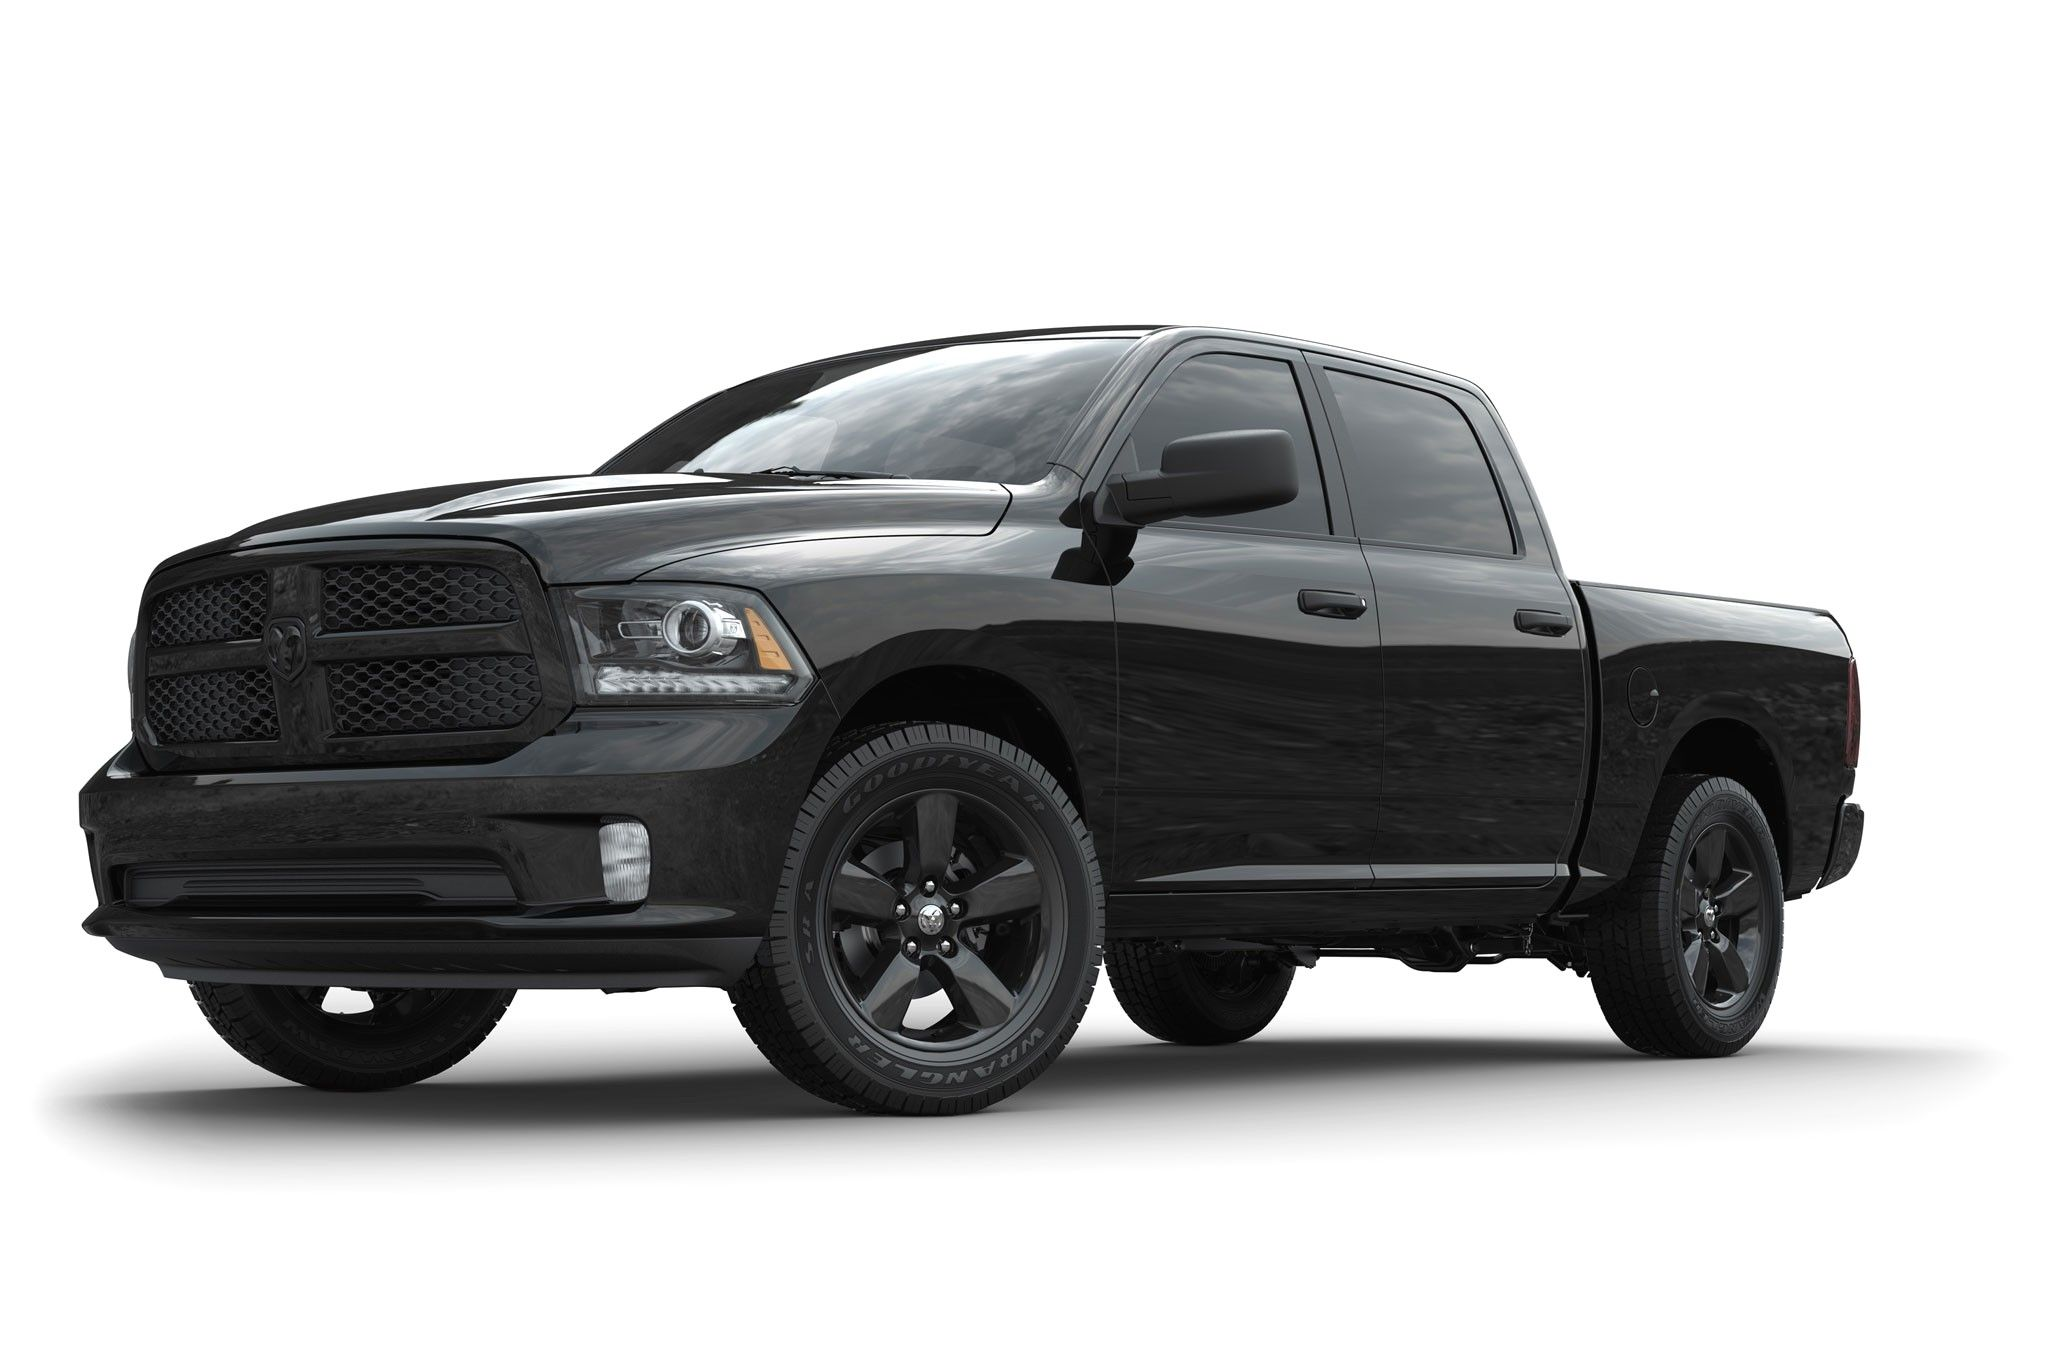 2017 dodge ram 1500 srt hellcat price carmodel pinterest hellcat price srt hellcat and. Black Bedroom Furniture Sets. Home Design Ideas